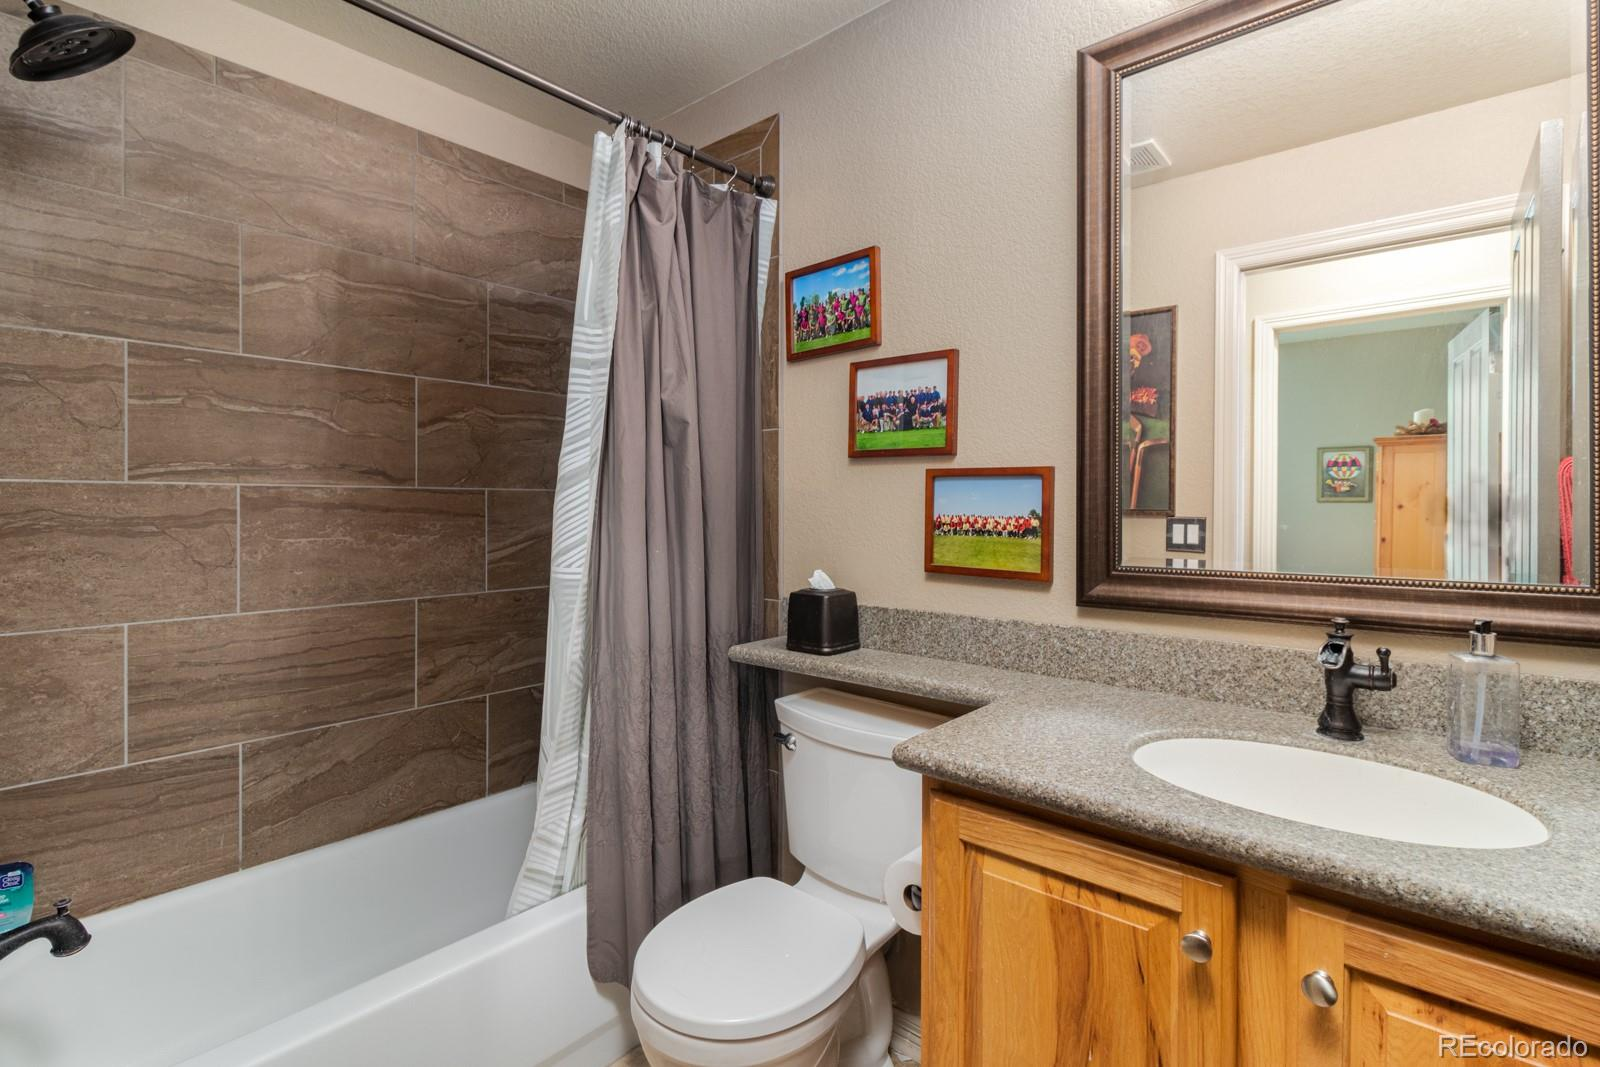 MLS# 7685605 - 21 - 8945 Tappy Toorie Circle, Highlands Ranch, CO 80129